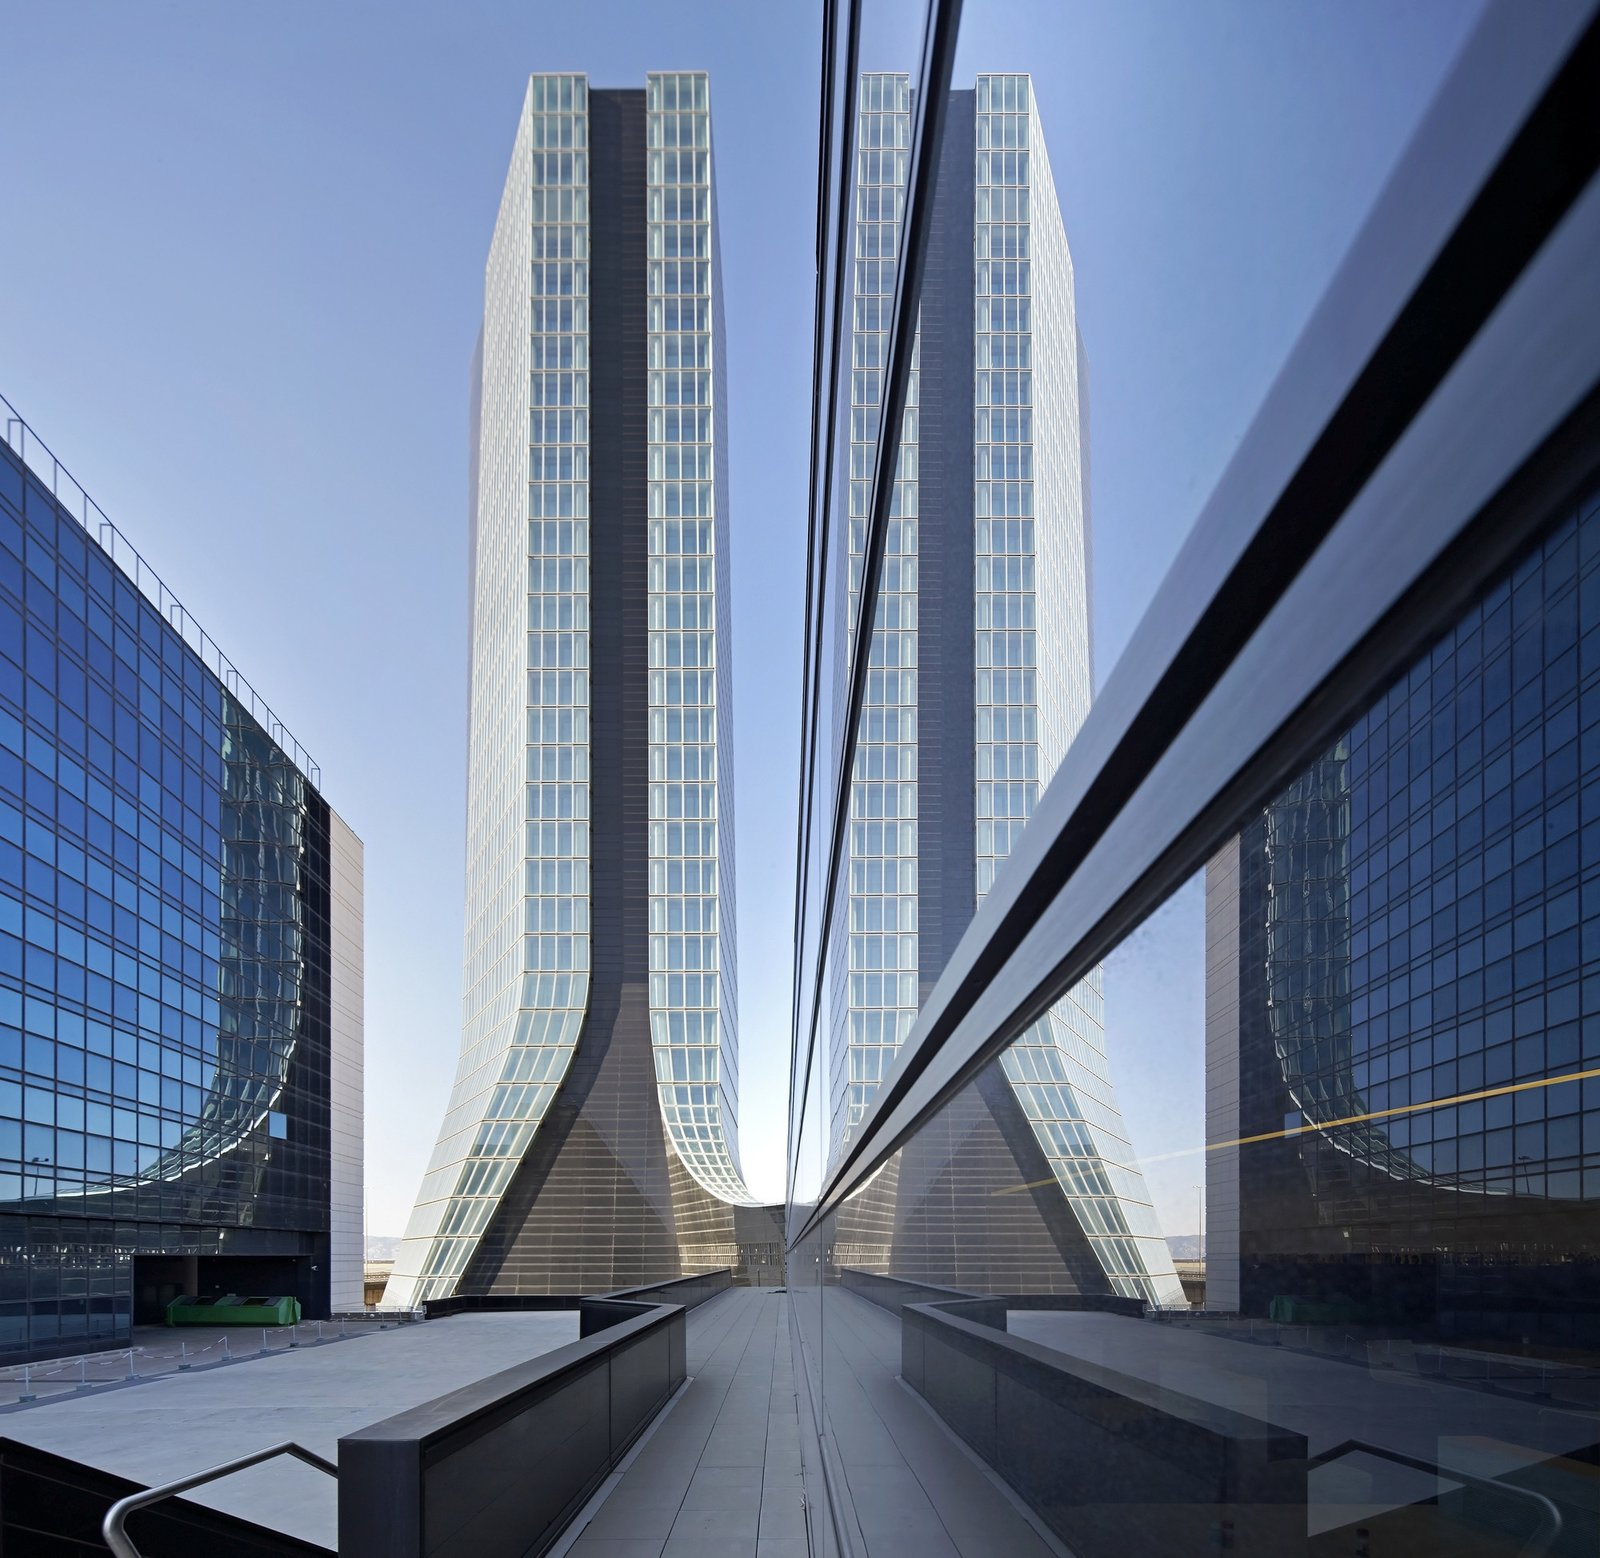 """Outdoor Hadid's  Photo 10 of 18 in """"Queen of the Curve"""": 18 Influential Works by Zaha Hadid"""